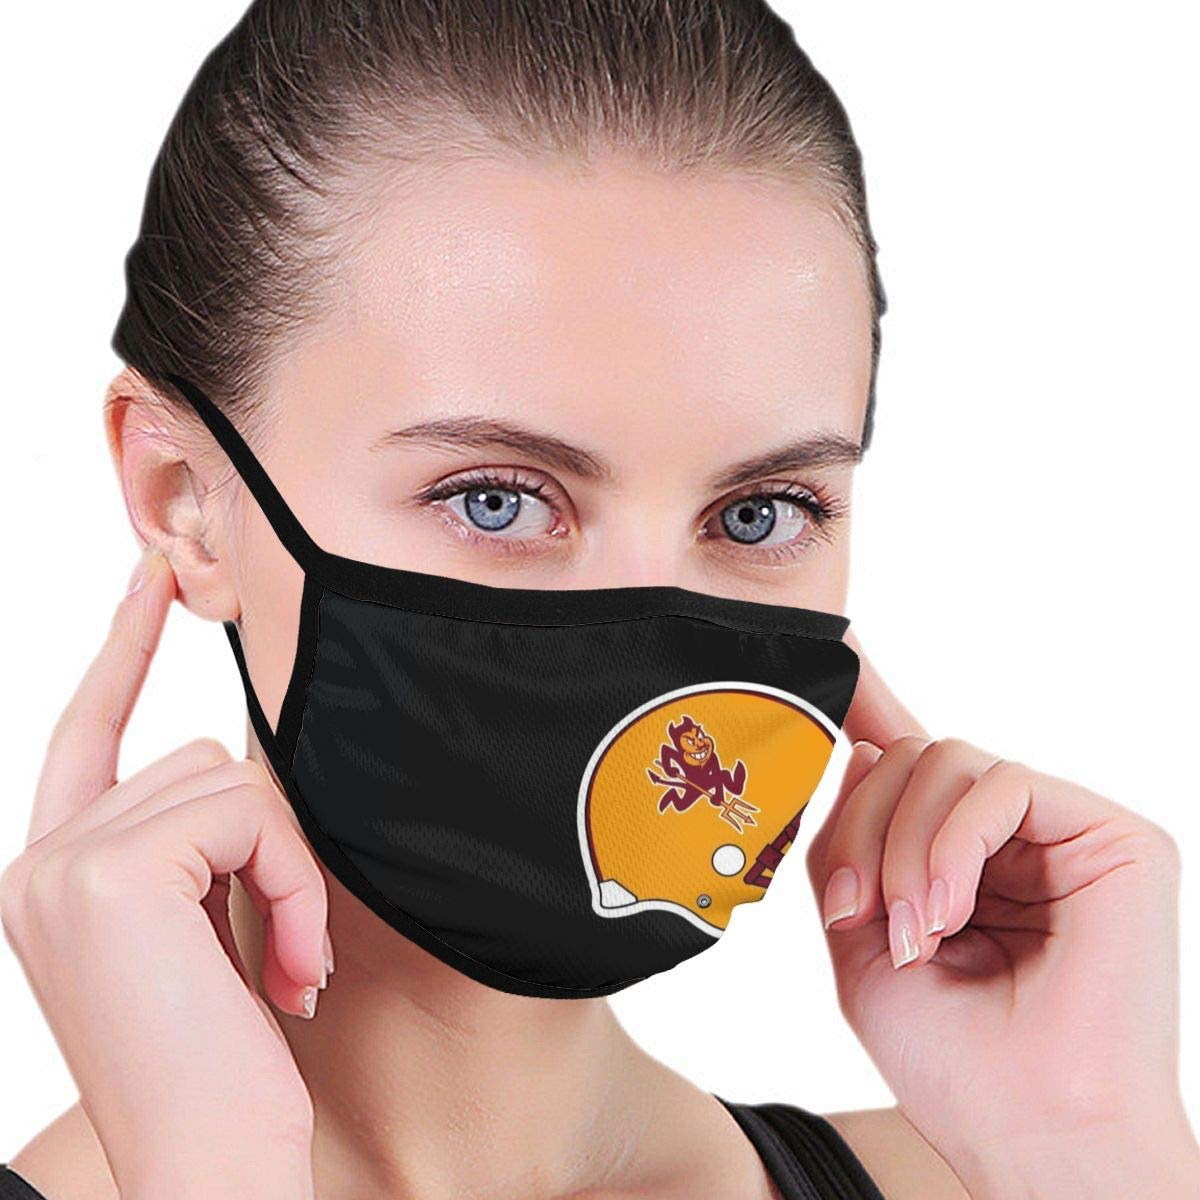 Amazon.com: Arizona State Sun Devils Dust Face Cover Washable  Reusable,Dustproof,Cycling(Adults&Kids Size): Clothing